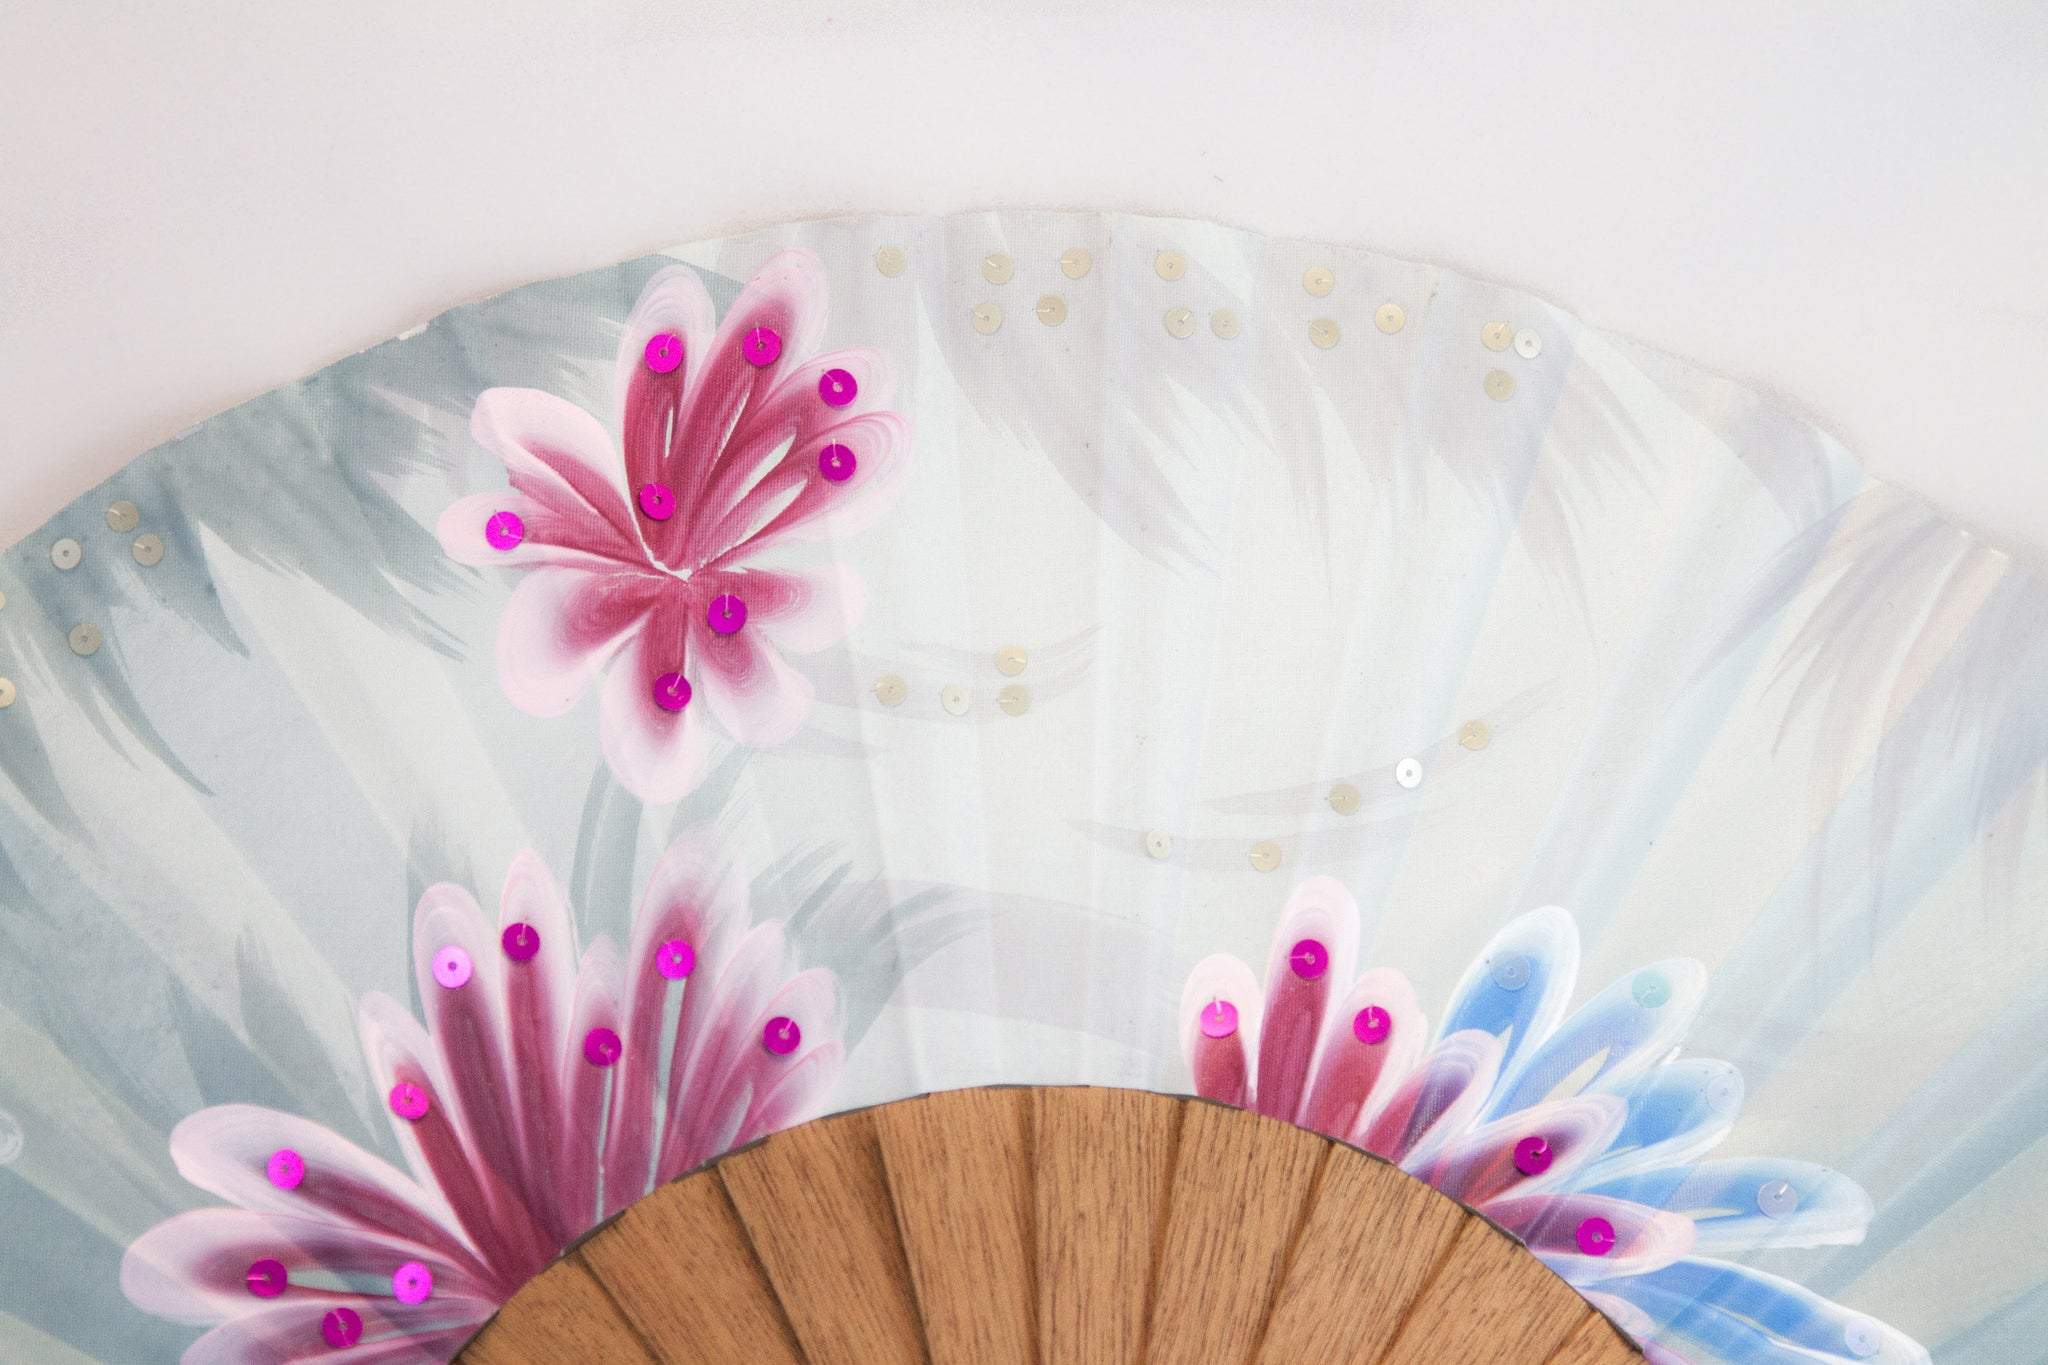 Hawaii - exquisite blue hand painted hand fan close up